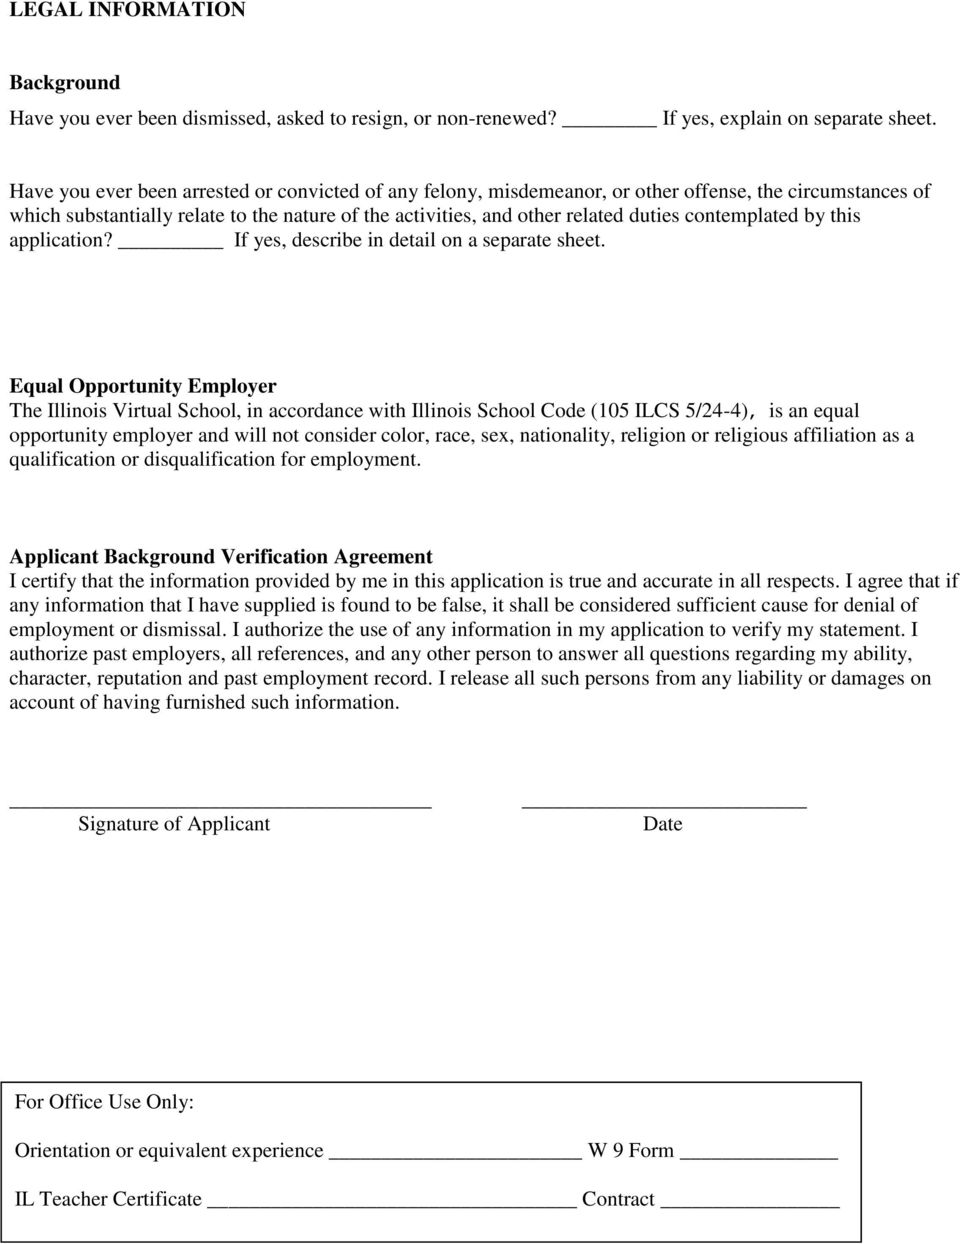 contemplated by this application? If yes, describe in detail on a separate sheet.